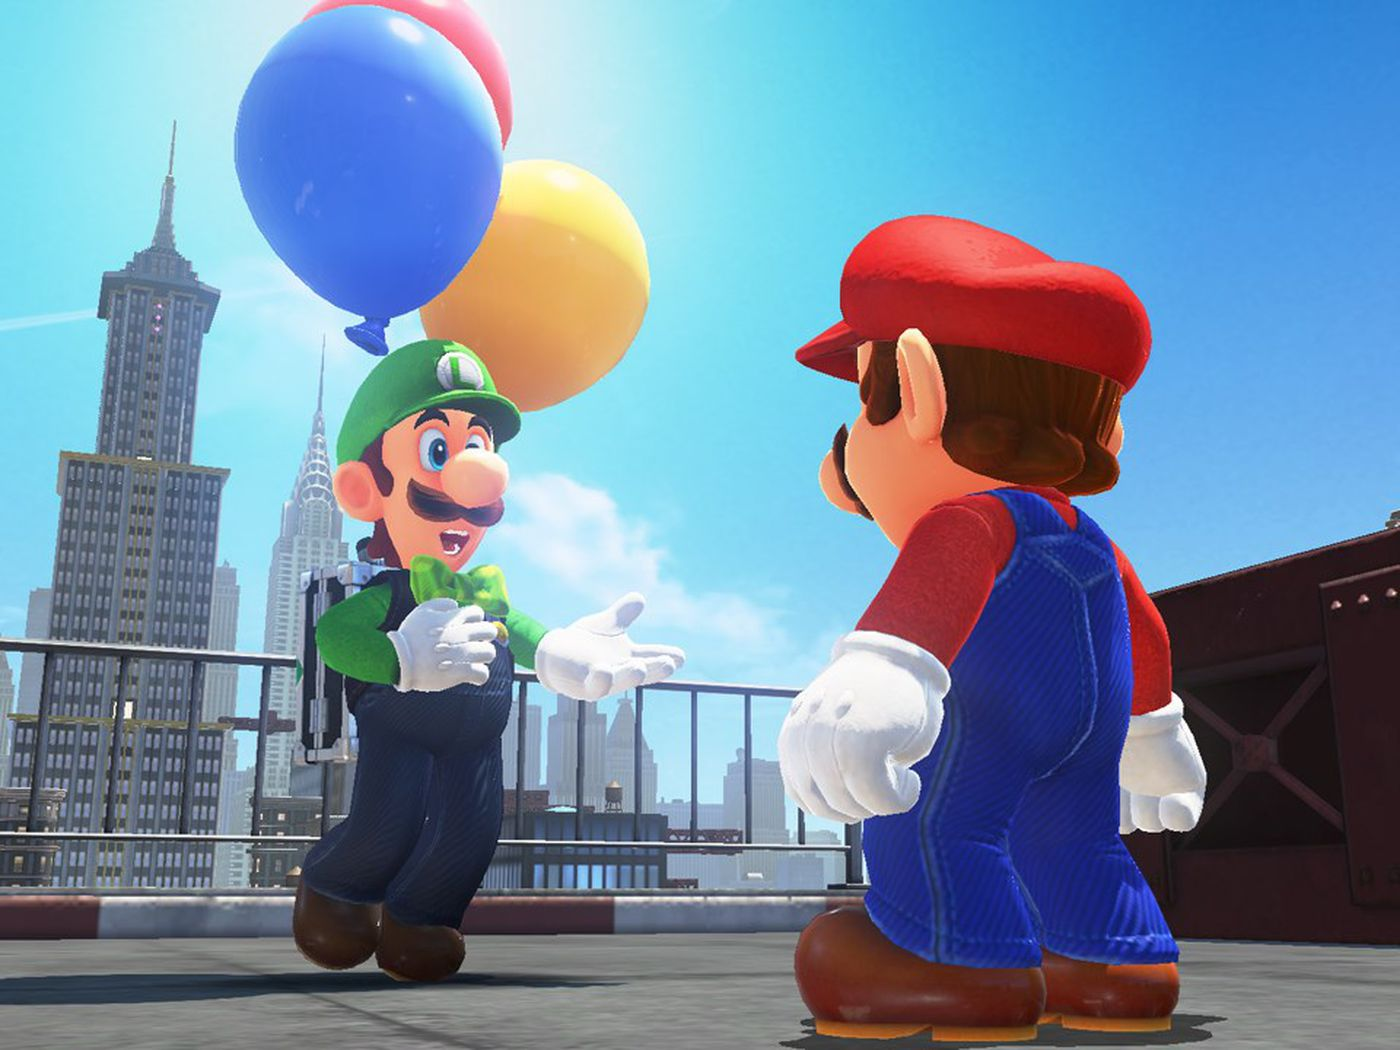 Super Mario Odyssey's first DLC is now available — time for Luigi